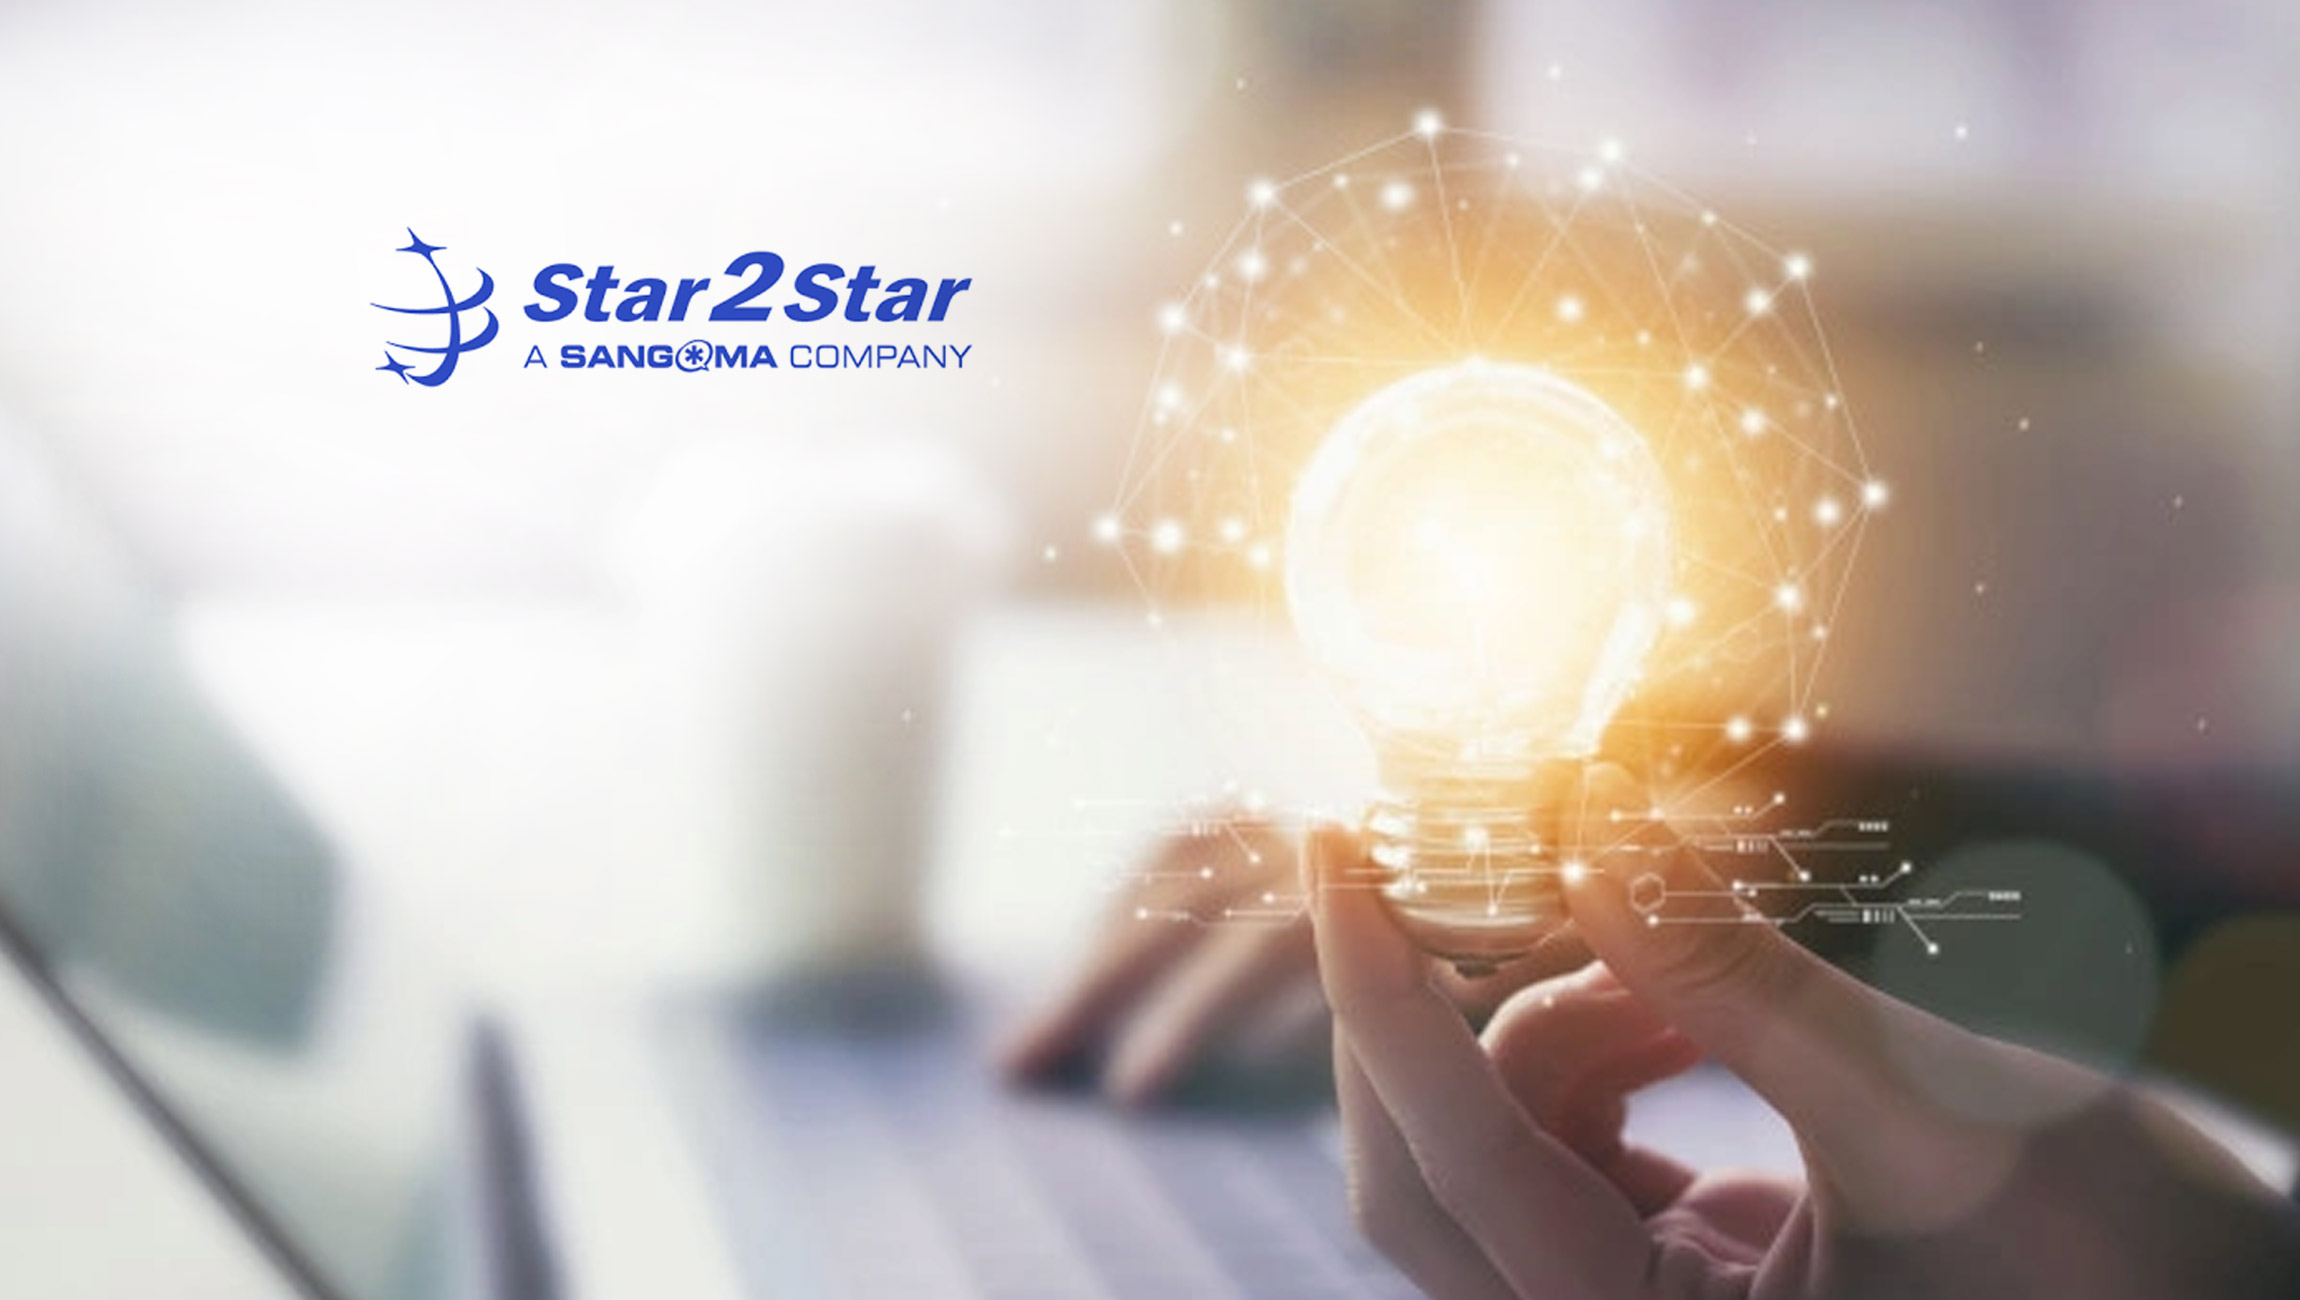 Star2Star, a Sangoma company, Honored With 5-Star Rating in the 2021 CRN® Partner Program Guide For 7th Consecutive Year